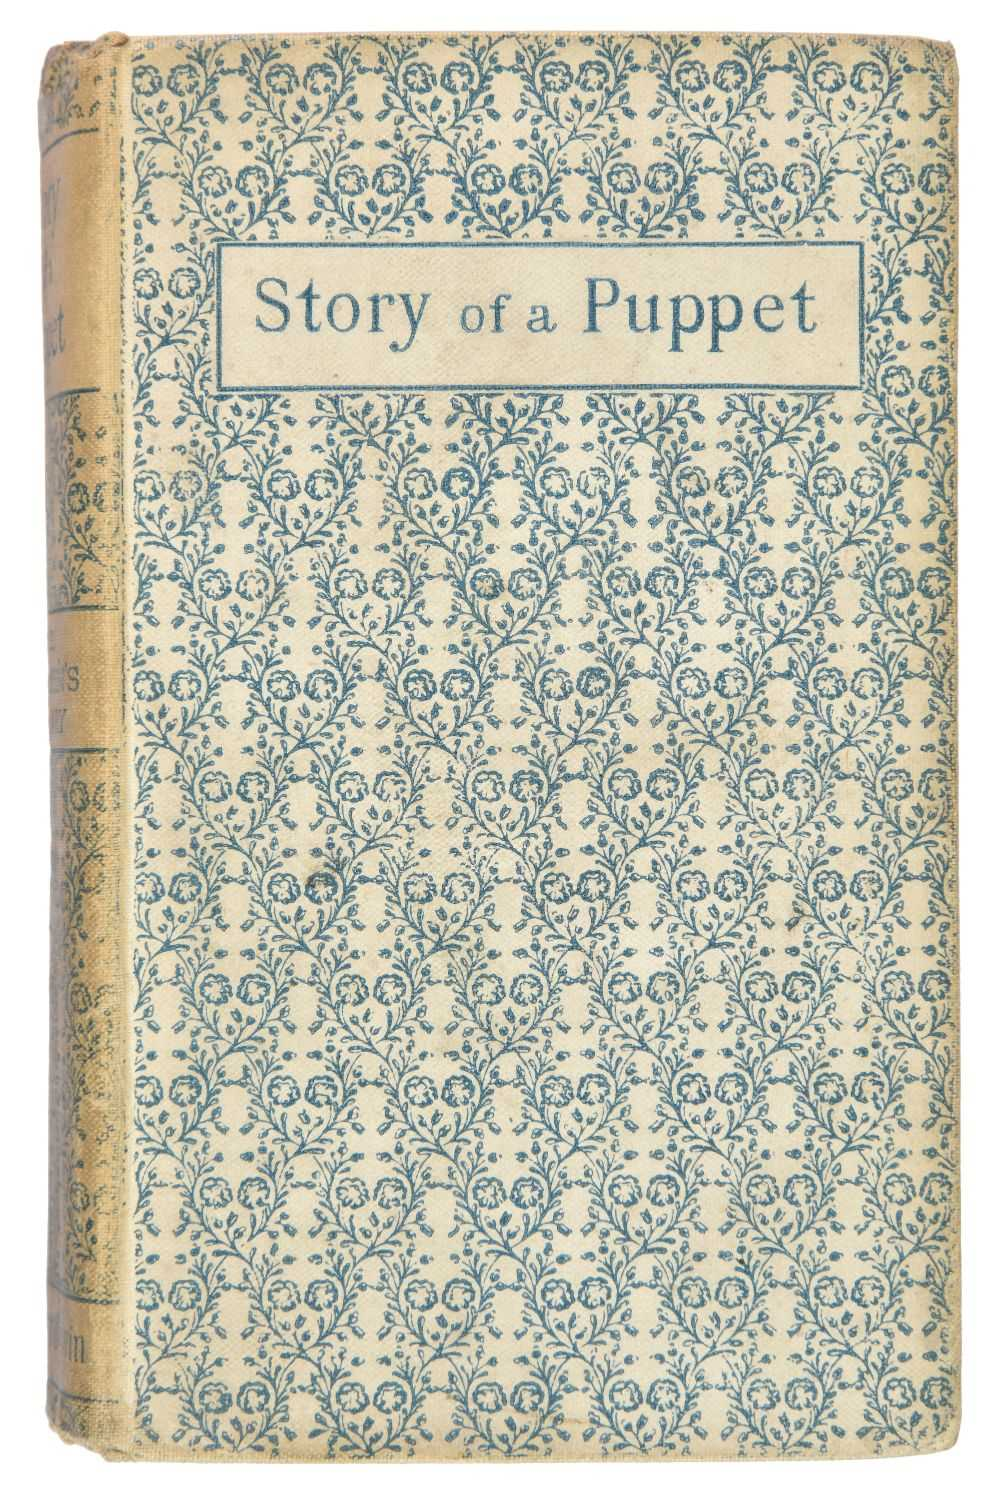 Lot 490-Collodi (Carlo, pseudonym of Carlo Lorenzini). The Story of a Puppet, 1st English edition, 1892